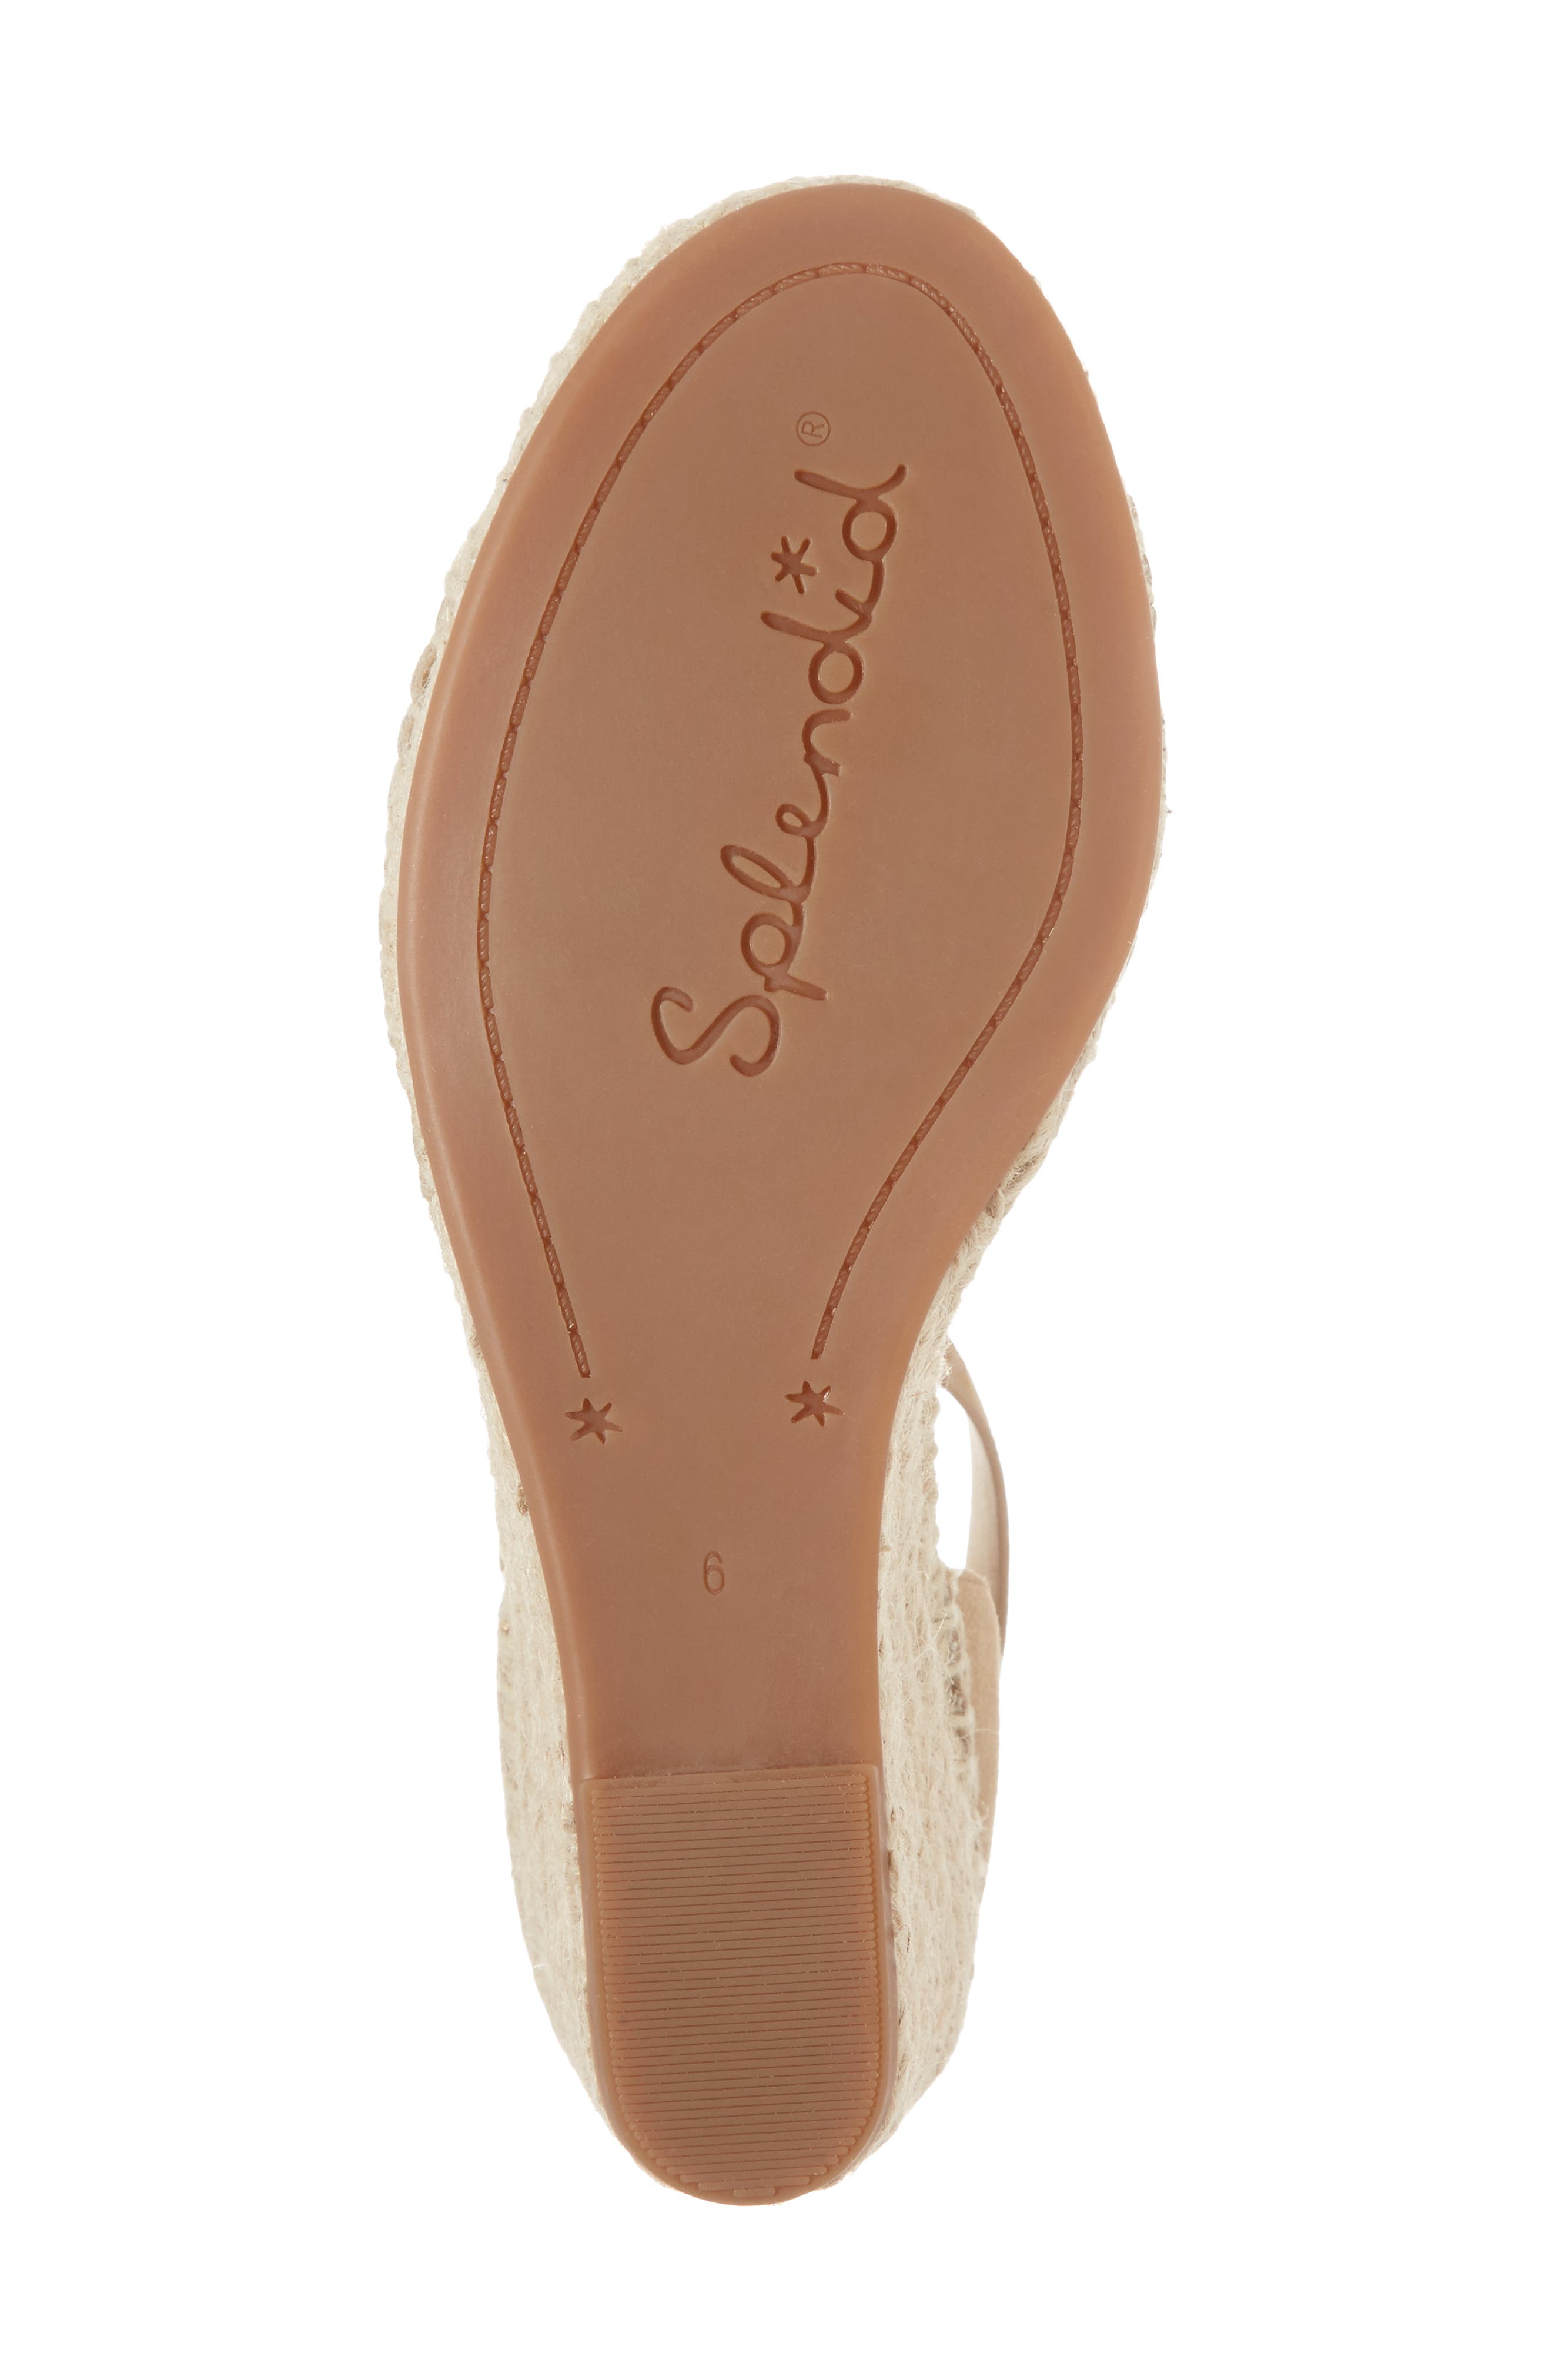 Bedford Espadrille Wedge Sandal,                             Alternate thumbnail 6, color,                             021